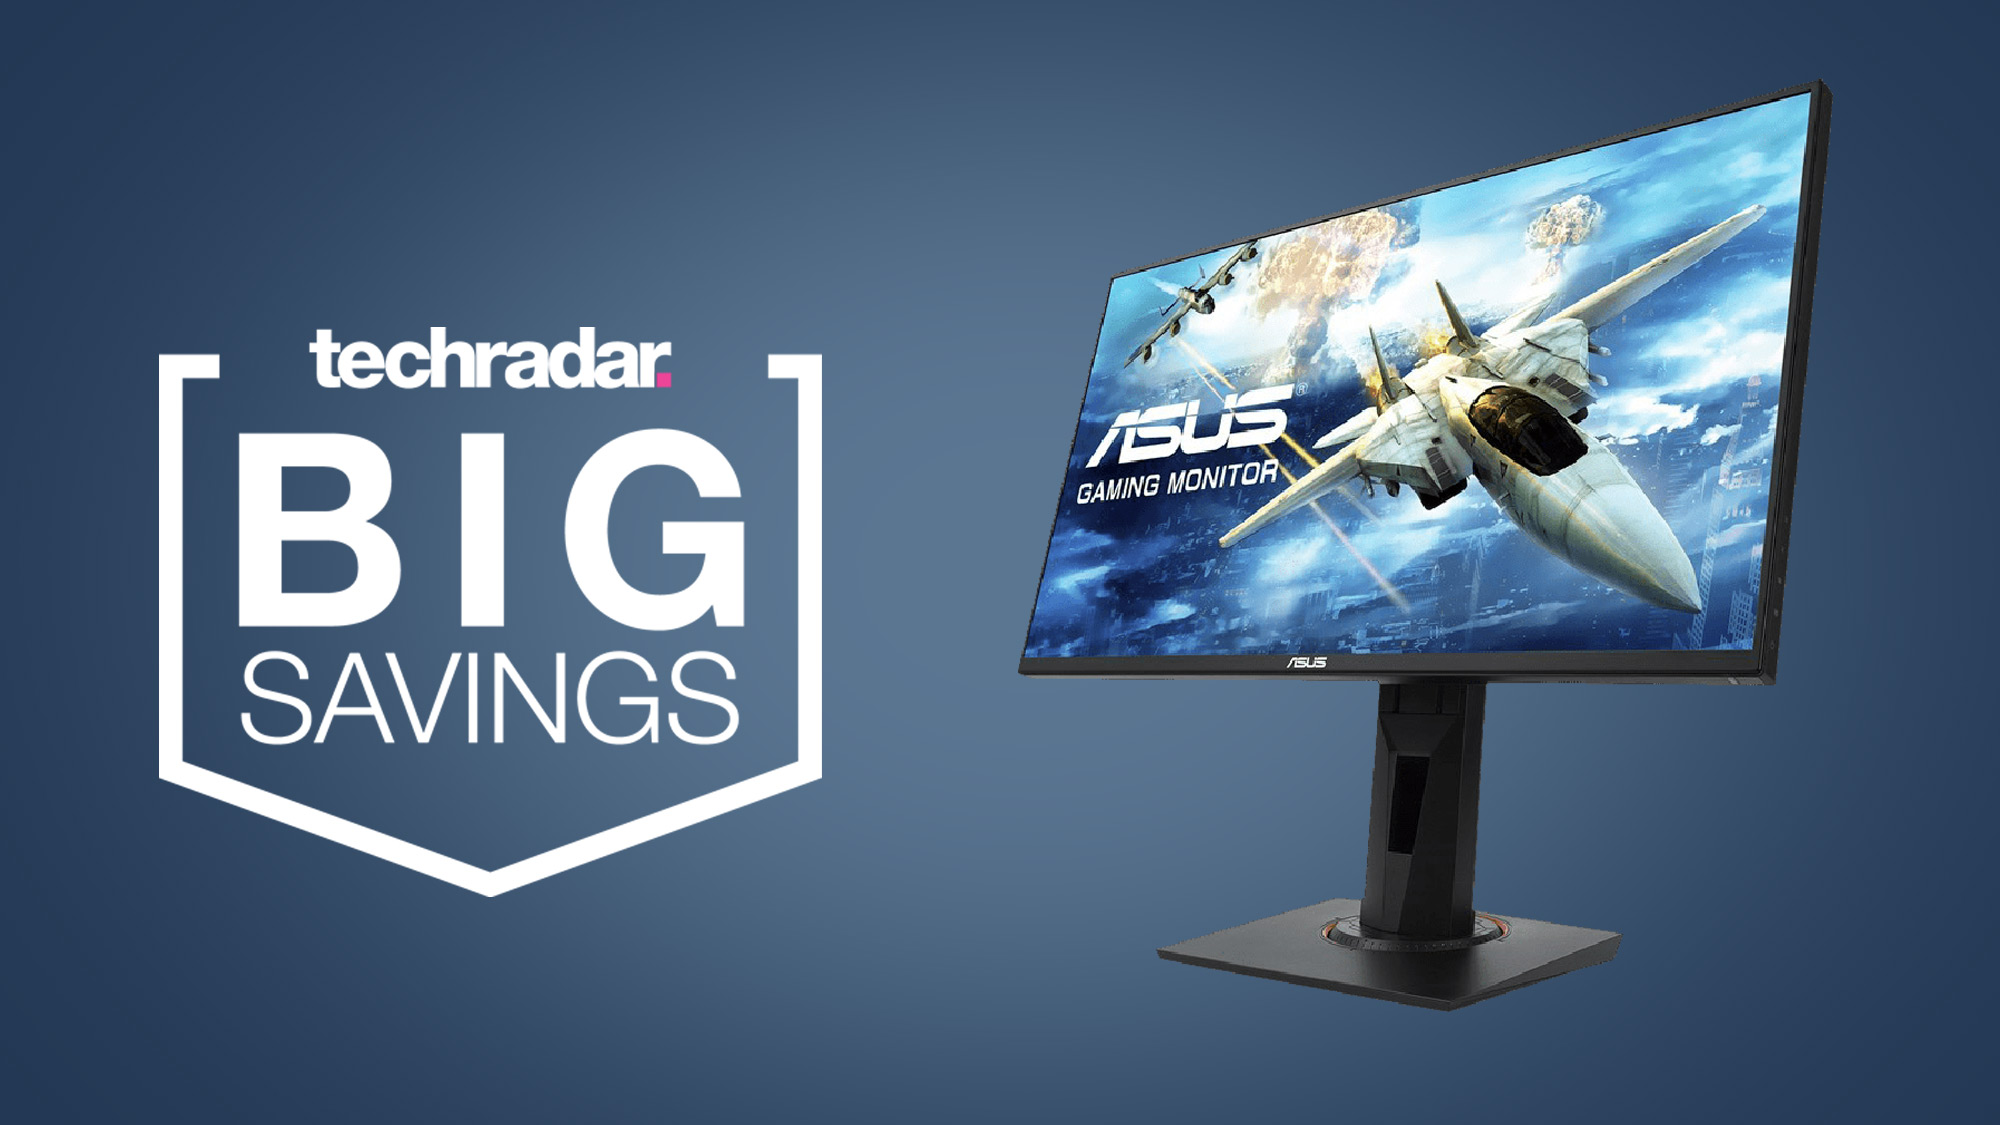 This stunning gaming monitor deal offers G-Sync and a 165Hz refresh rate for a fantastic price